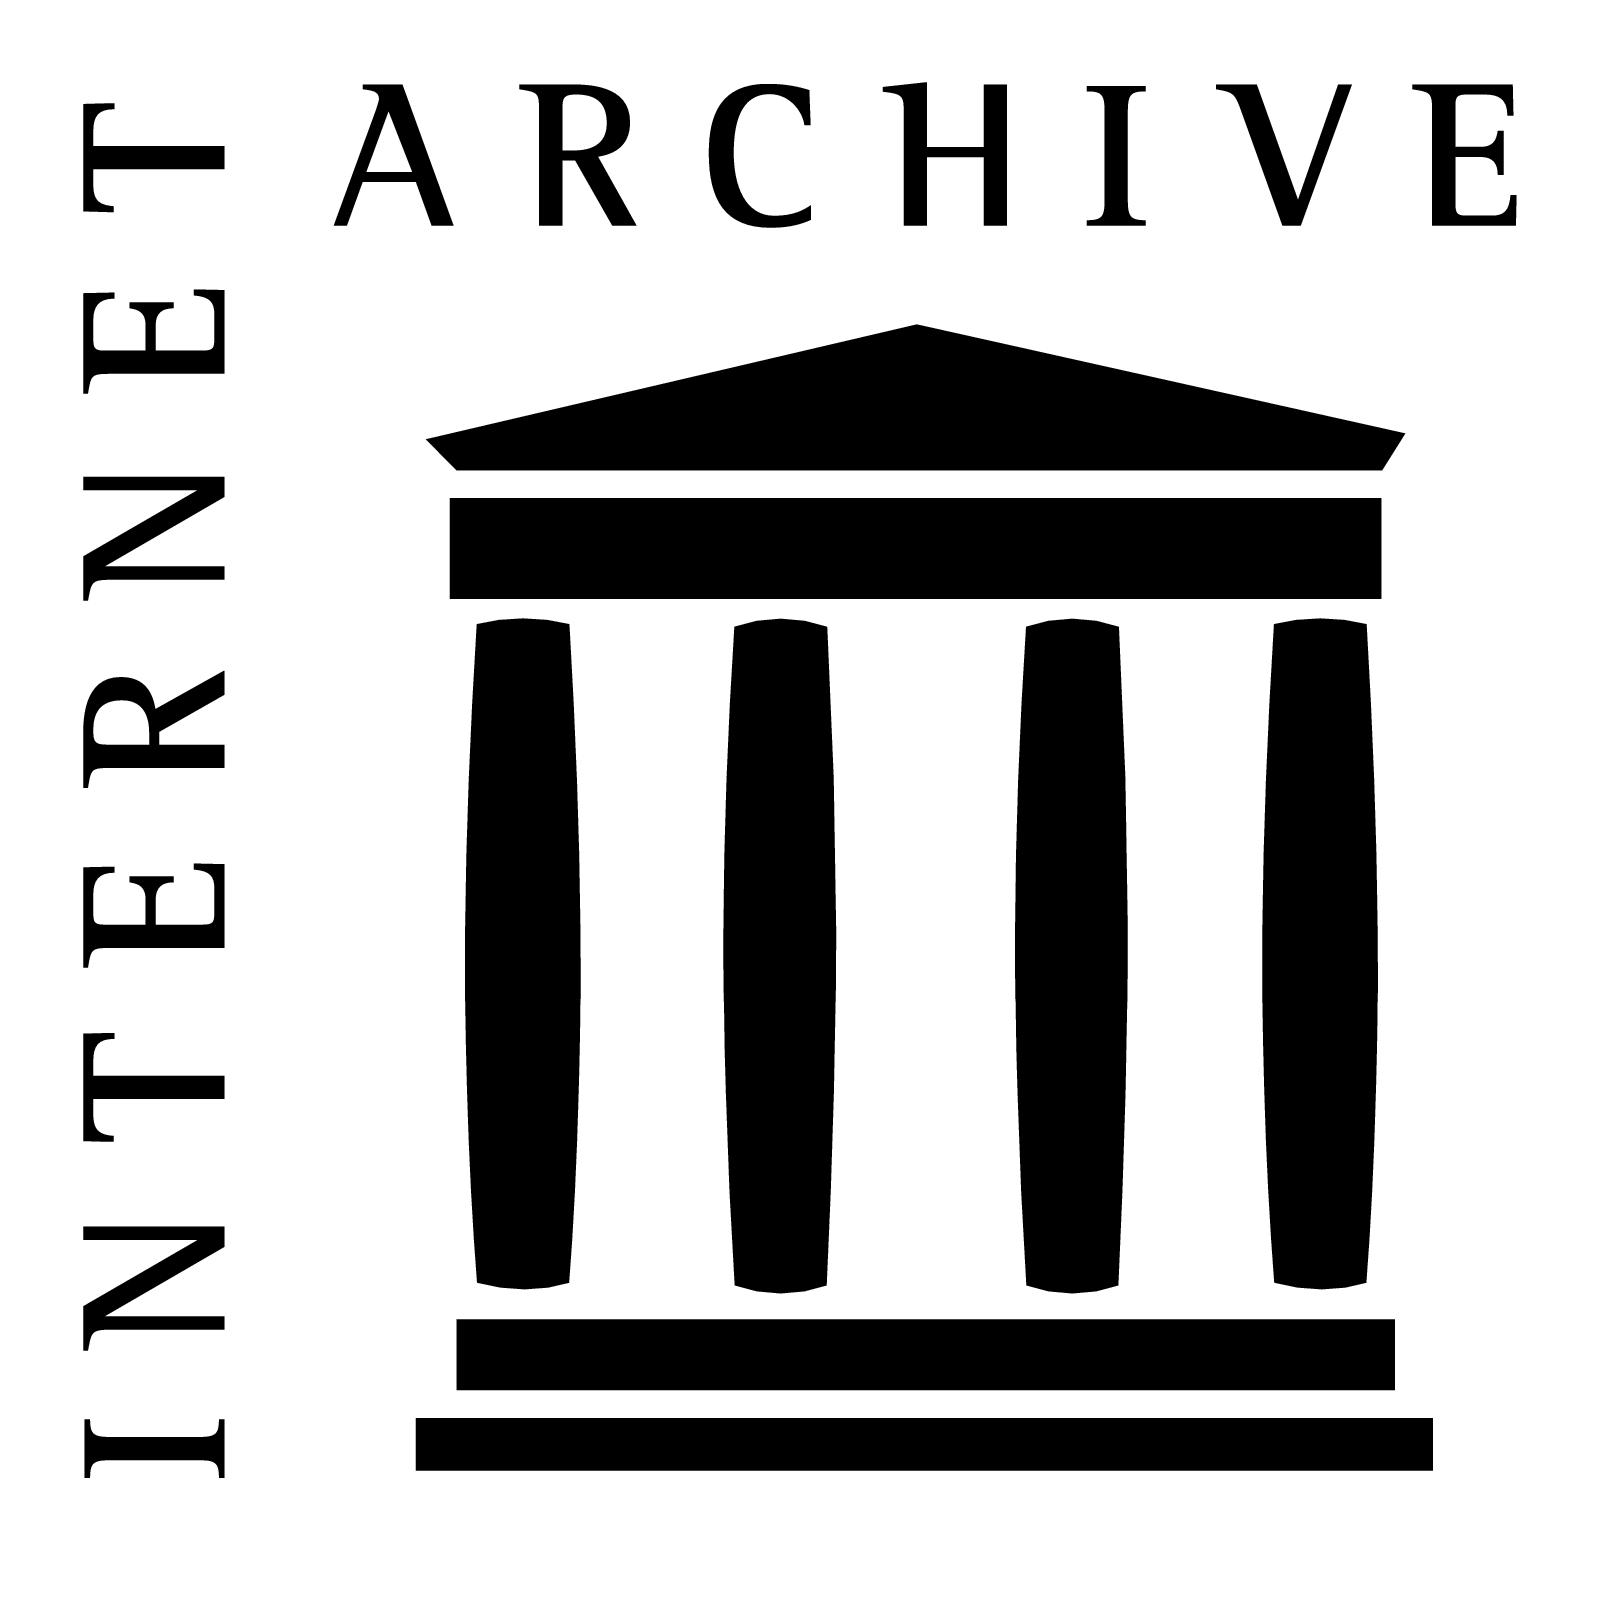 Internet archive org